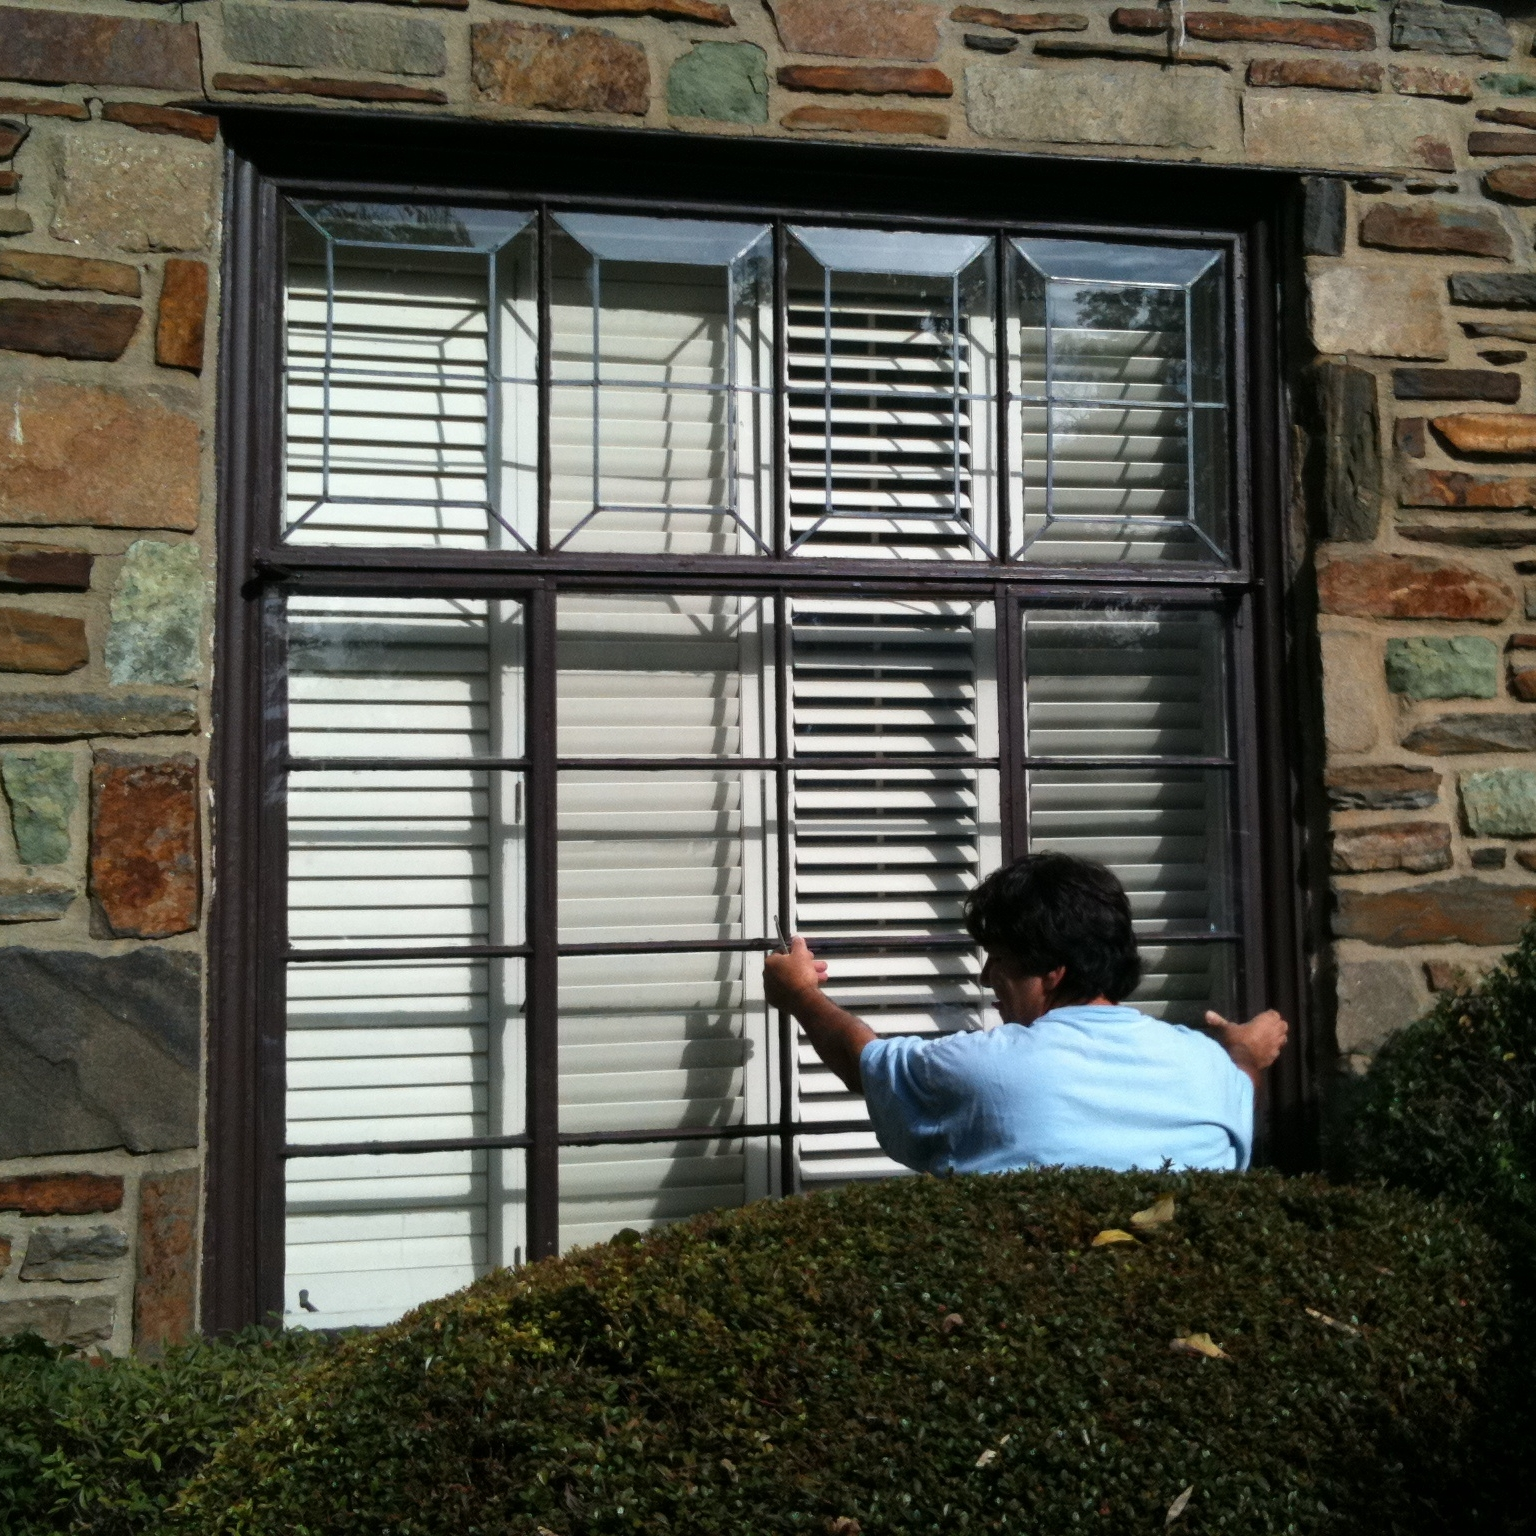 """Casement (and, in fact, most historic) windows are hard to fix and insulate – which is why lazy contractors often remove them, citing dubious """"environmental"""" standards that don't account for the cost of throwing out perfectly serviceable components that were engineered to last generations, not 3 - 5 years, the service life of most contemporary, """"lifetime guaranteed"""" windows. As a principle, we won't replace any historic windows that we can fix ourselves or insulate – and most, unless they are seriously rotted out, fall into that category. The inimitable windows here, approximately a century old, still exist today."""